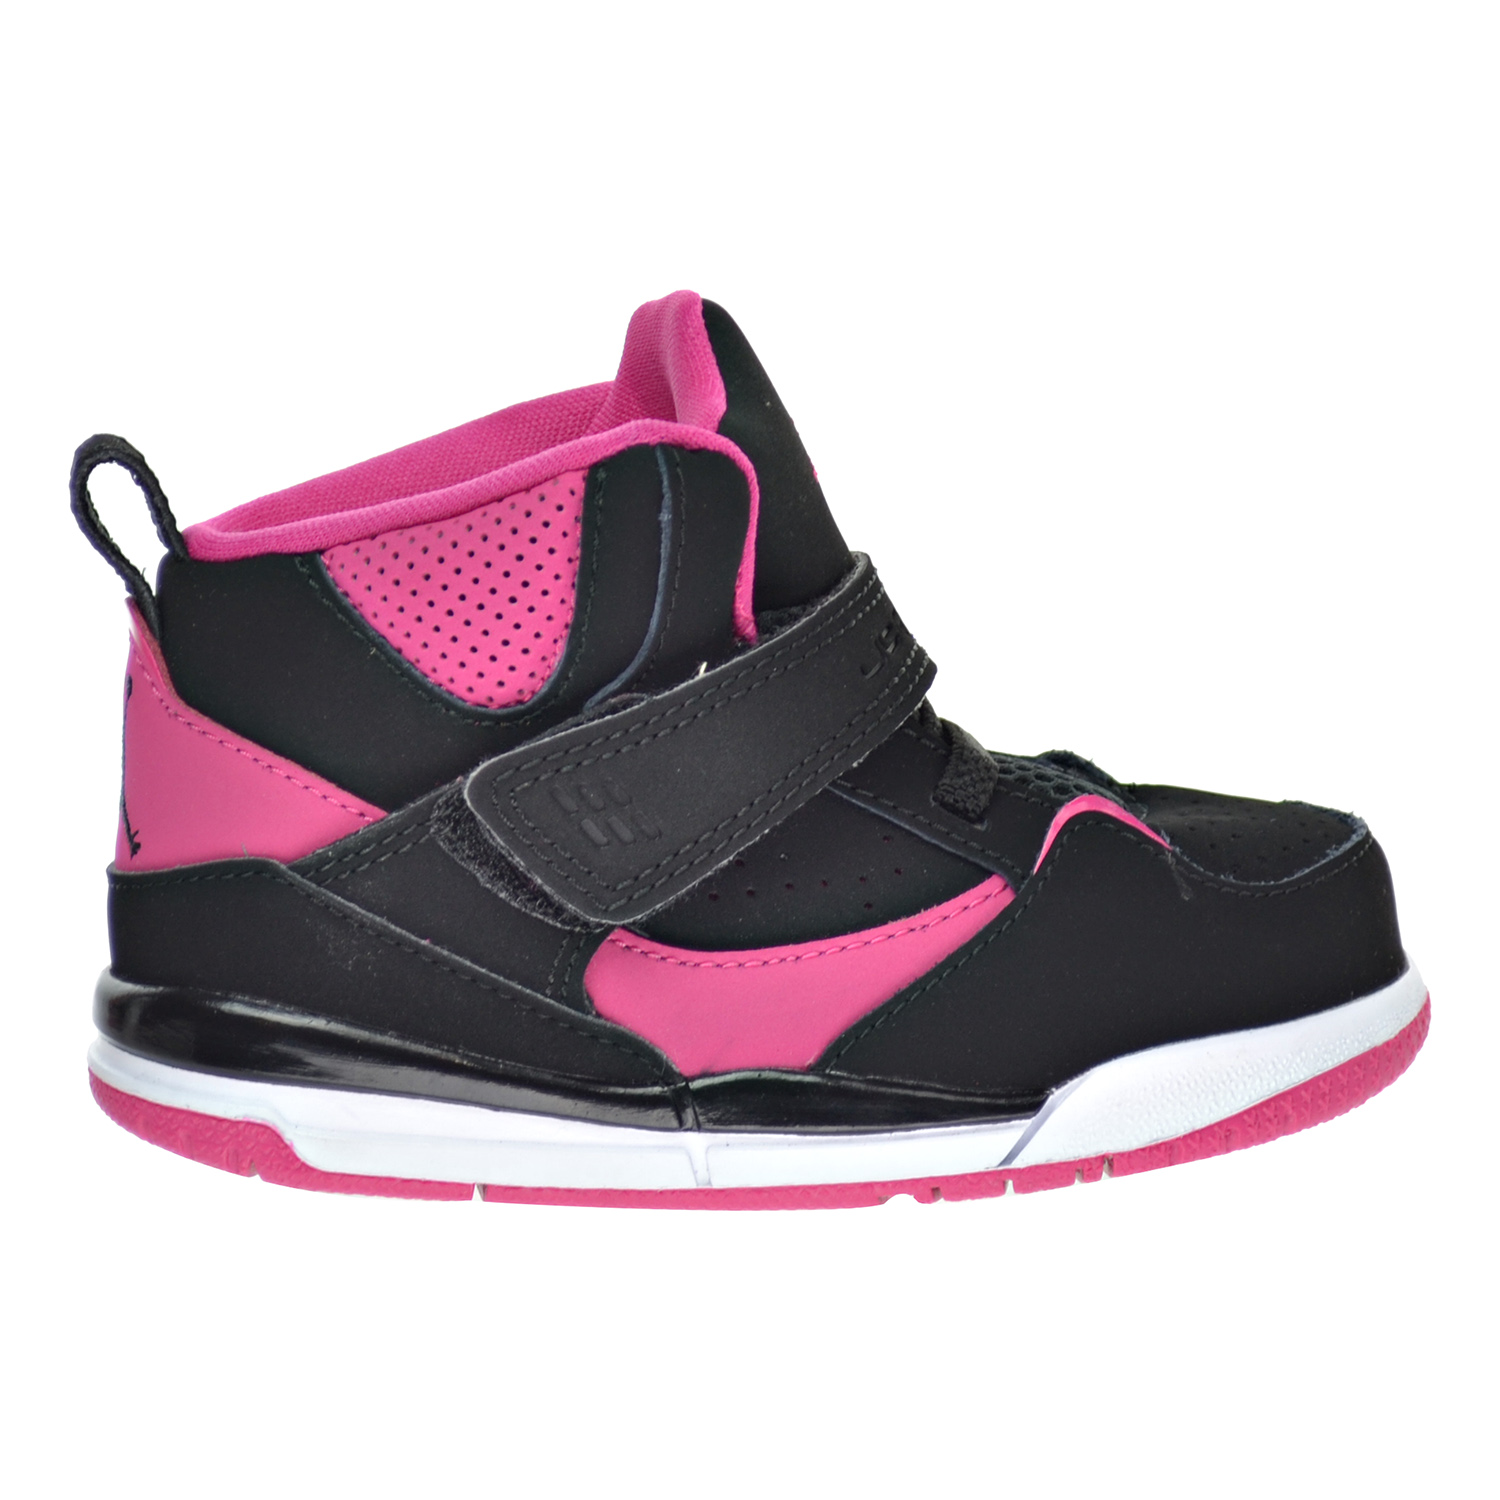 Nike Flight 45 High GT Toddler Shoes Black/Vivid Pink/Whi...